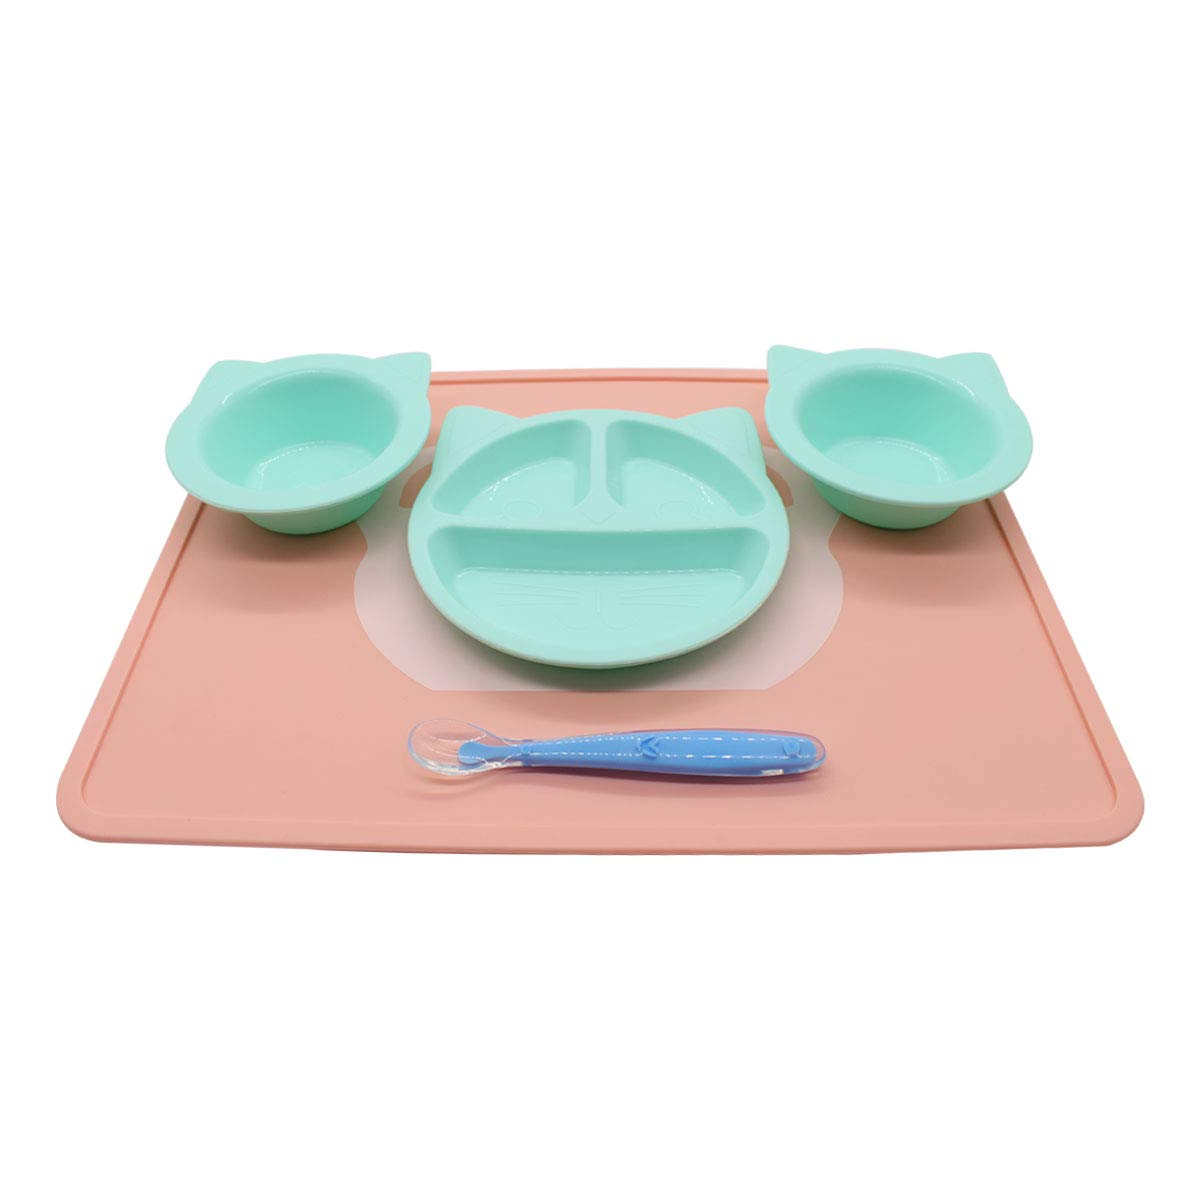 Baby Feeding Set -Silicone Bowl and Dishes for Toddler - Non-Slip Placemat Plate Design Cartoon Bowl & Soft Spoon Aids Self Feeding - Toddler Dishes